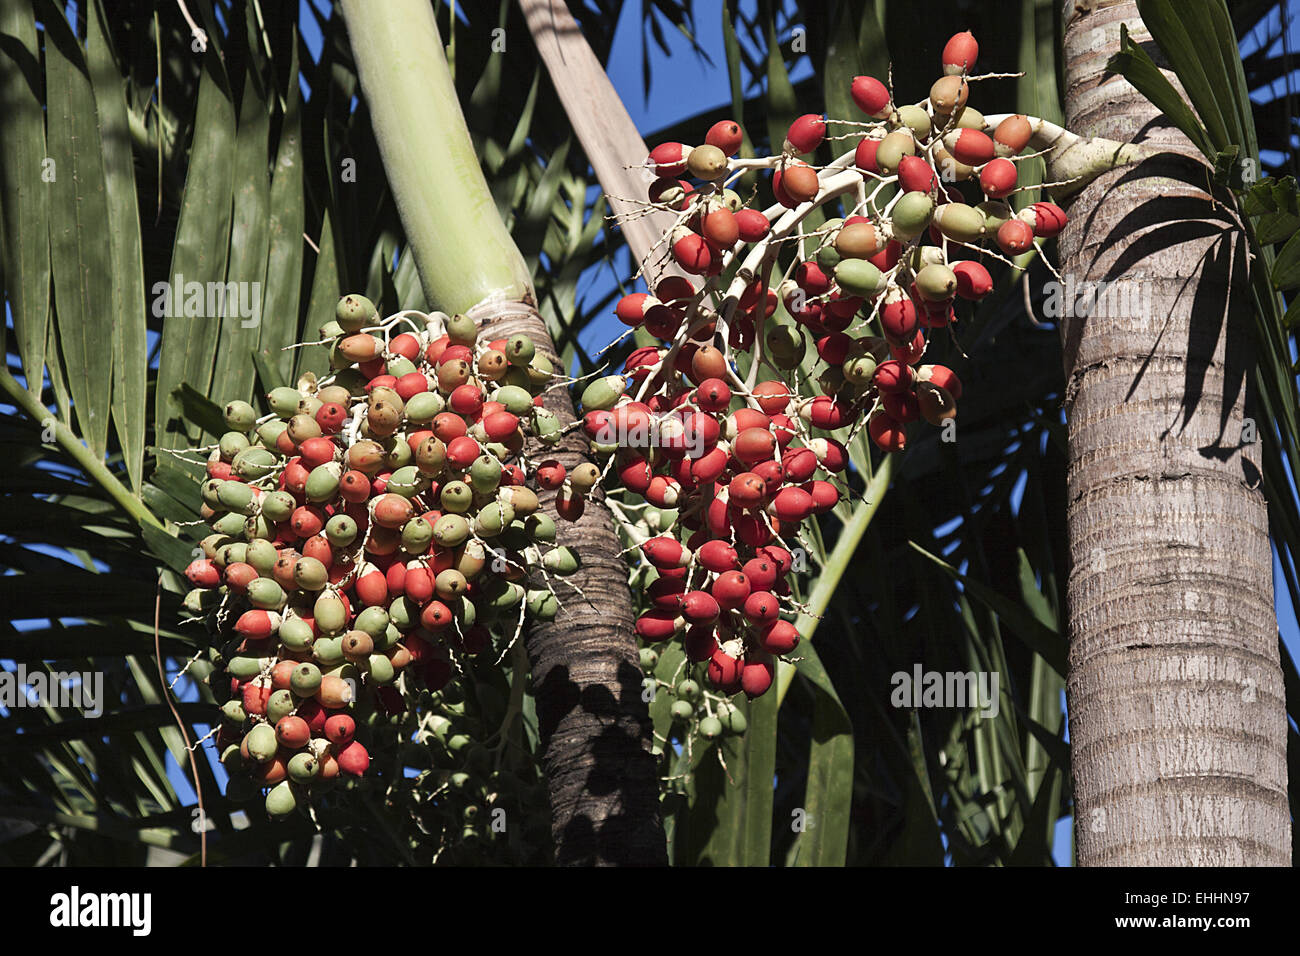 Yellow Palm Areca Palm Chrysalidocarpus Lutescens Areca Palms Stock Photos And Areca Palms Stock Images Alamy